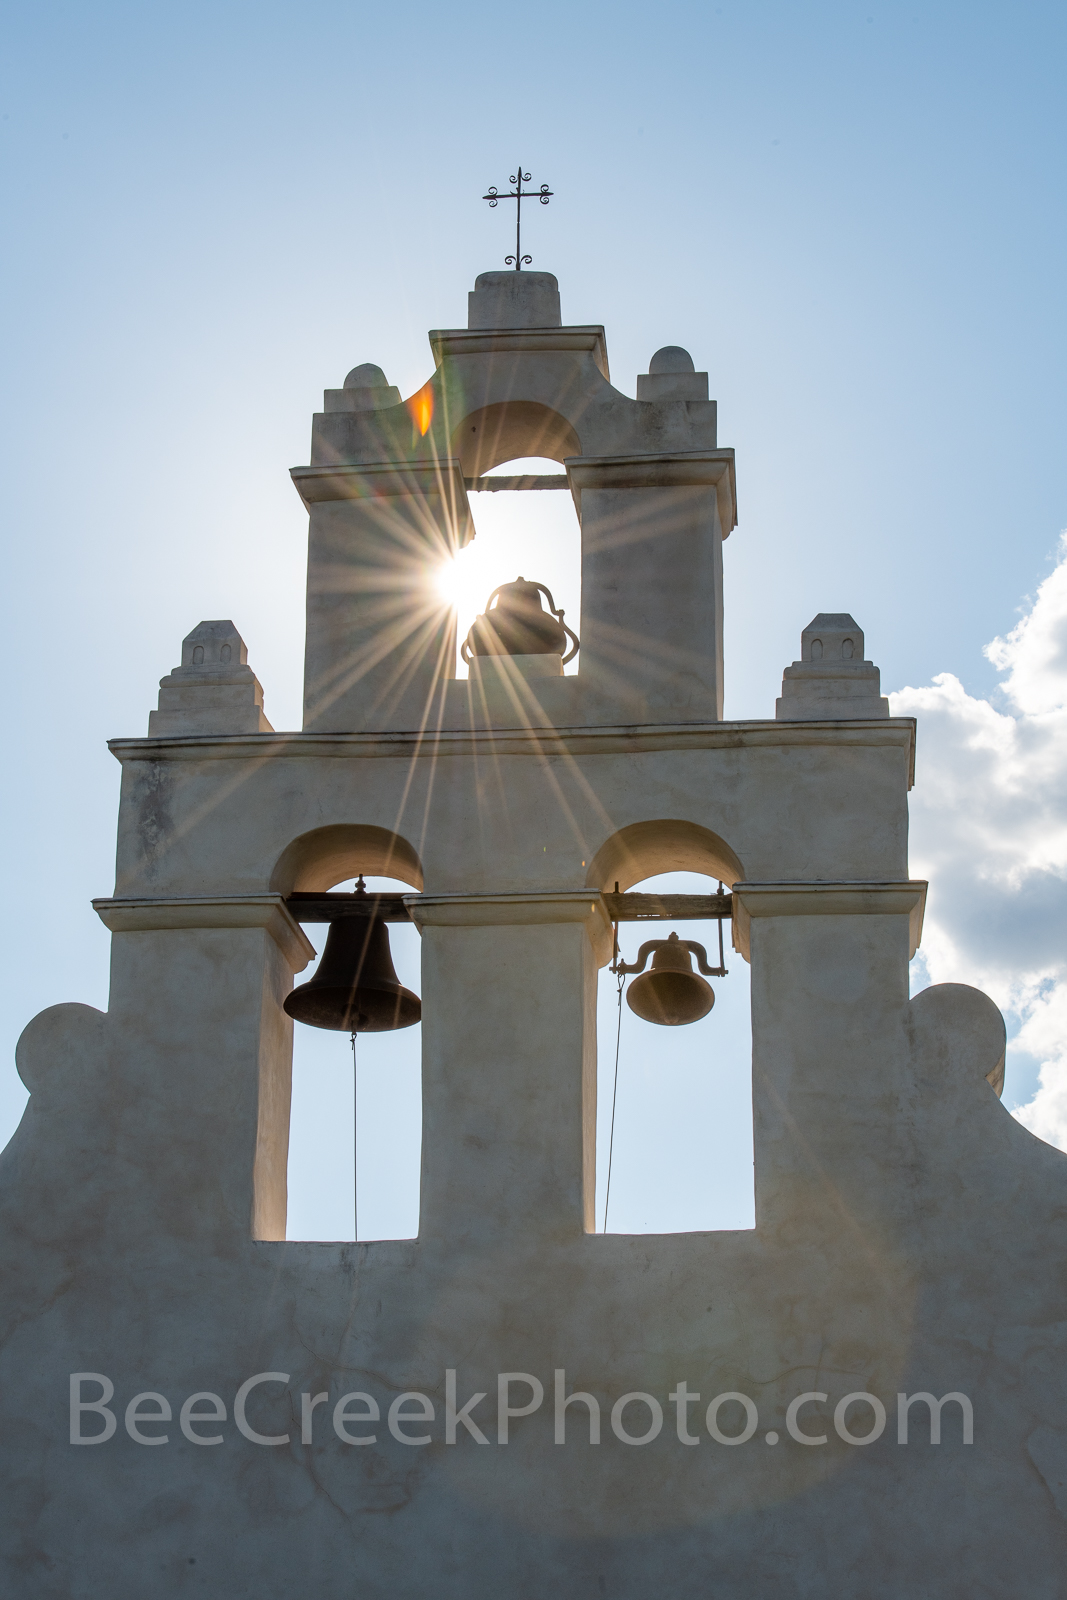 San Antonio, San Juan Mission, bells tower, vertical, tall, sun rays, sparkle, Missions, San Juan Mission Bell Tower, tourist, close up, Texas missions, landmarks, churches, chruch, catholic, prints, , photo